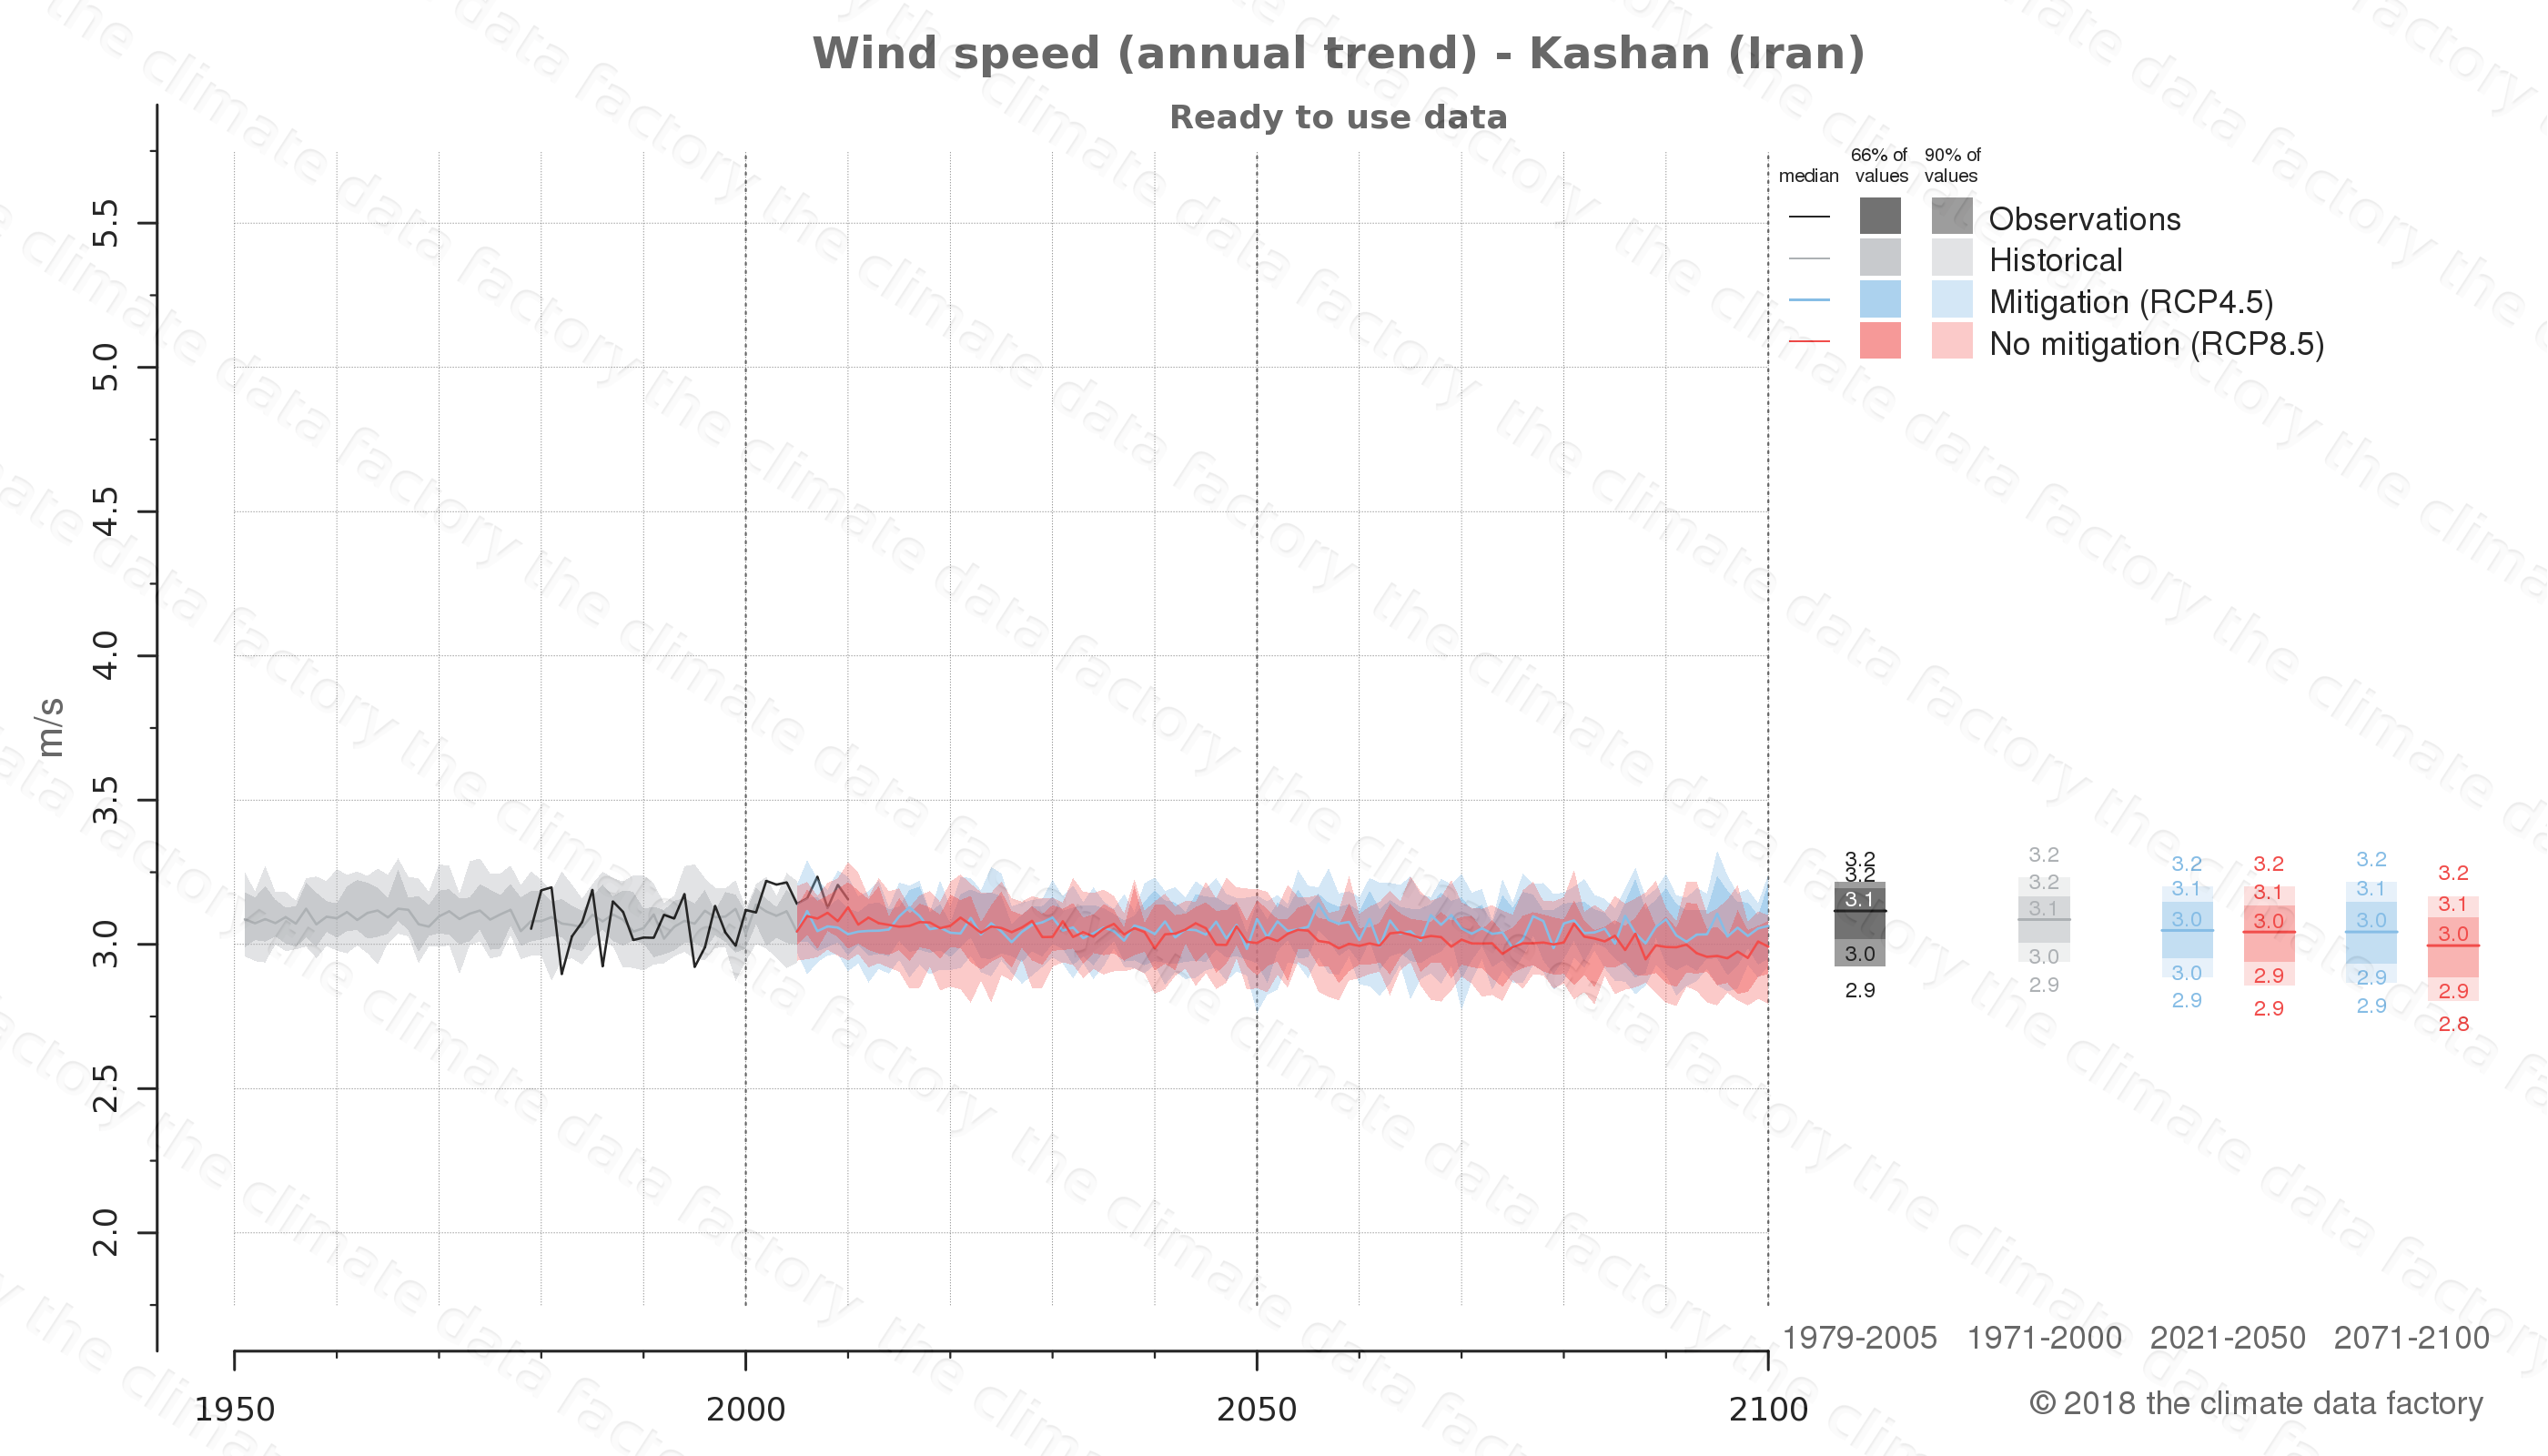 climate change data policy adaptation climate graph city data wind-speed kashan iran